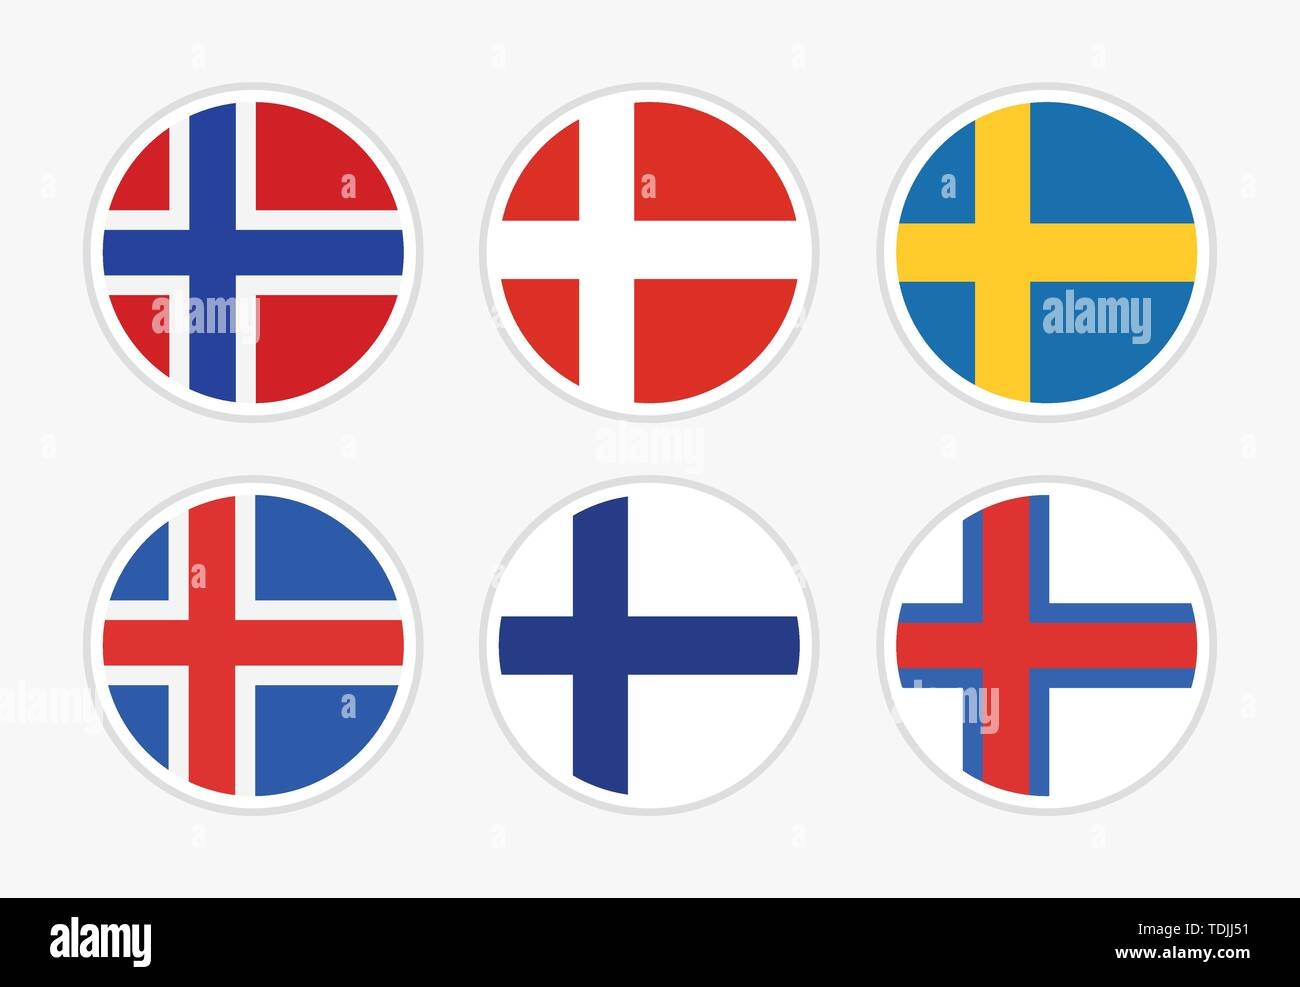 Flags of Northern Europe, Scandinavia, Set of vector round icon illustration on white background. - Stock Image